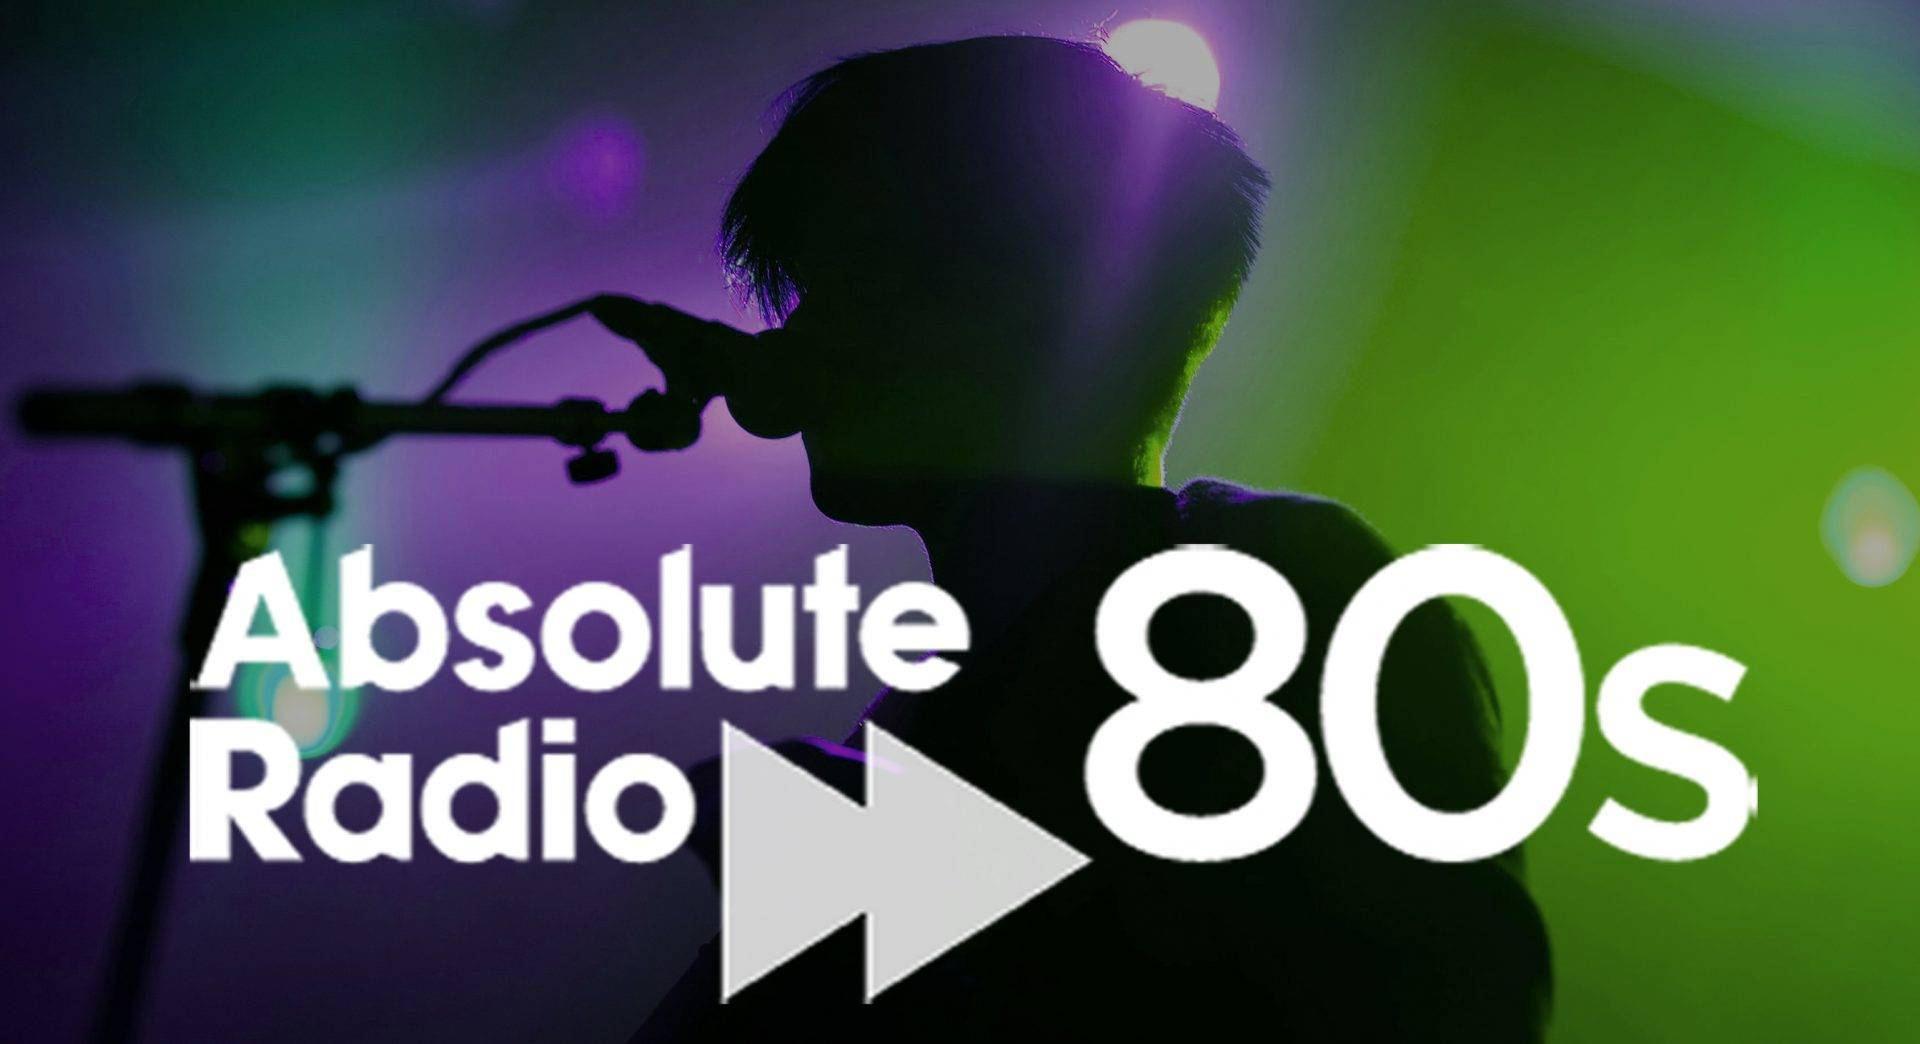 Absolute 80s Radio